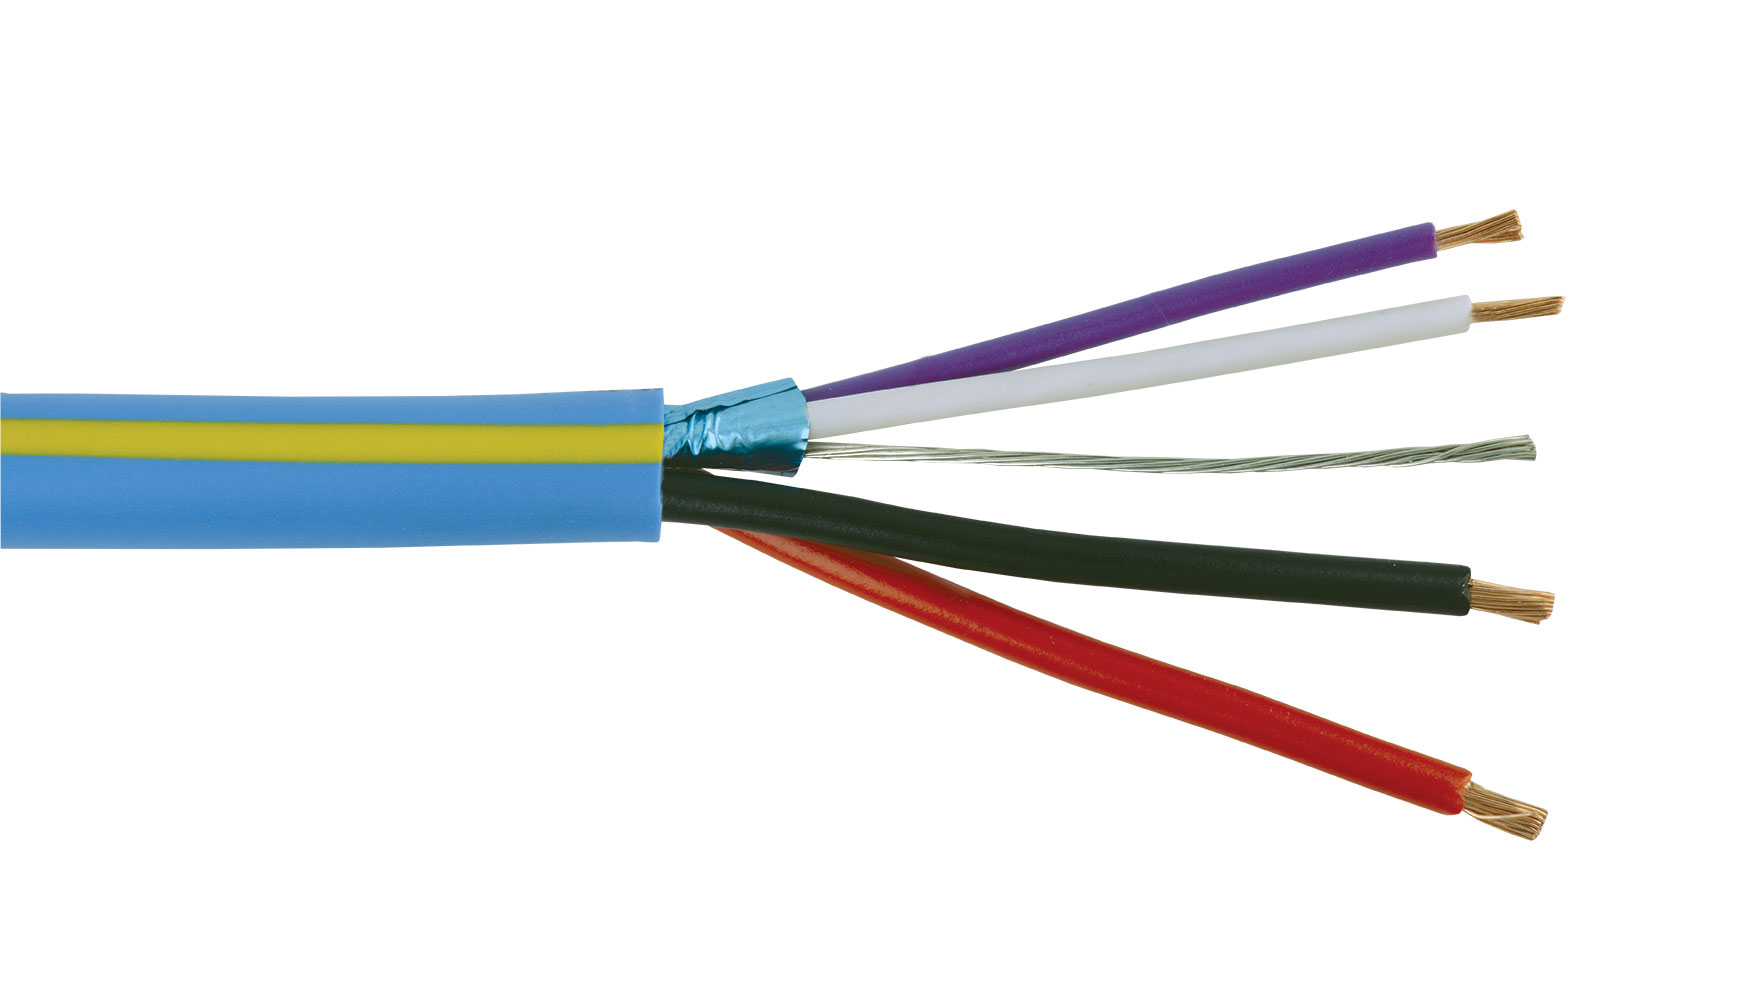 Liberty Av Lutron Yel Universal Control And Power Cable Electrical Wiring Cables Grx Cbl 346s Spec